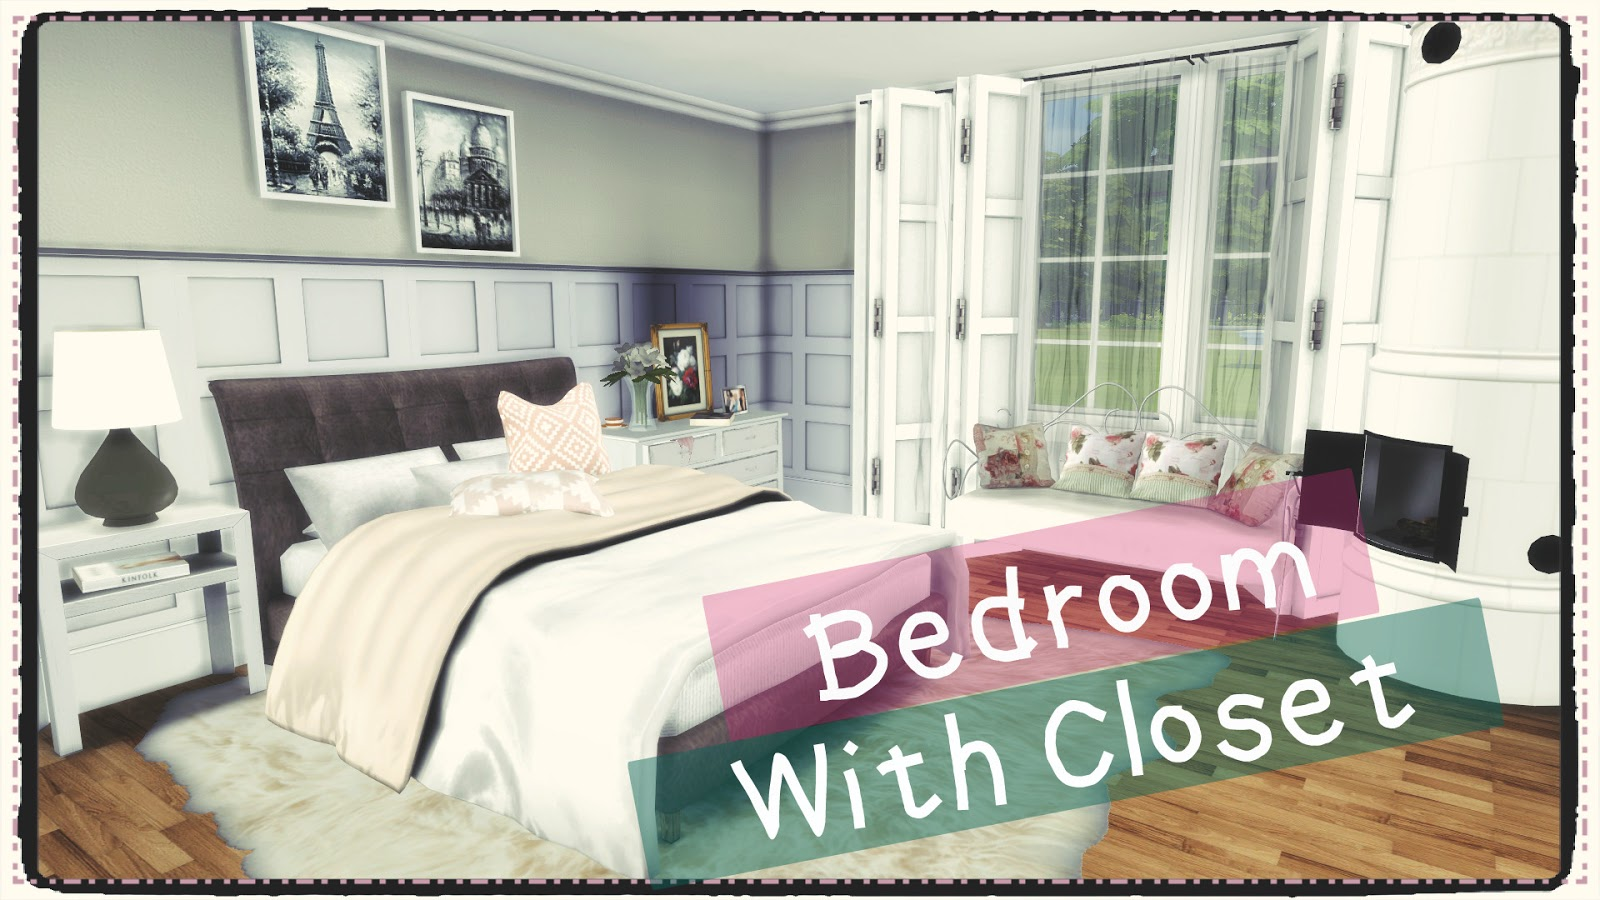 Sims 4 bedroom with closet build decoration dinha for Four bedroom